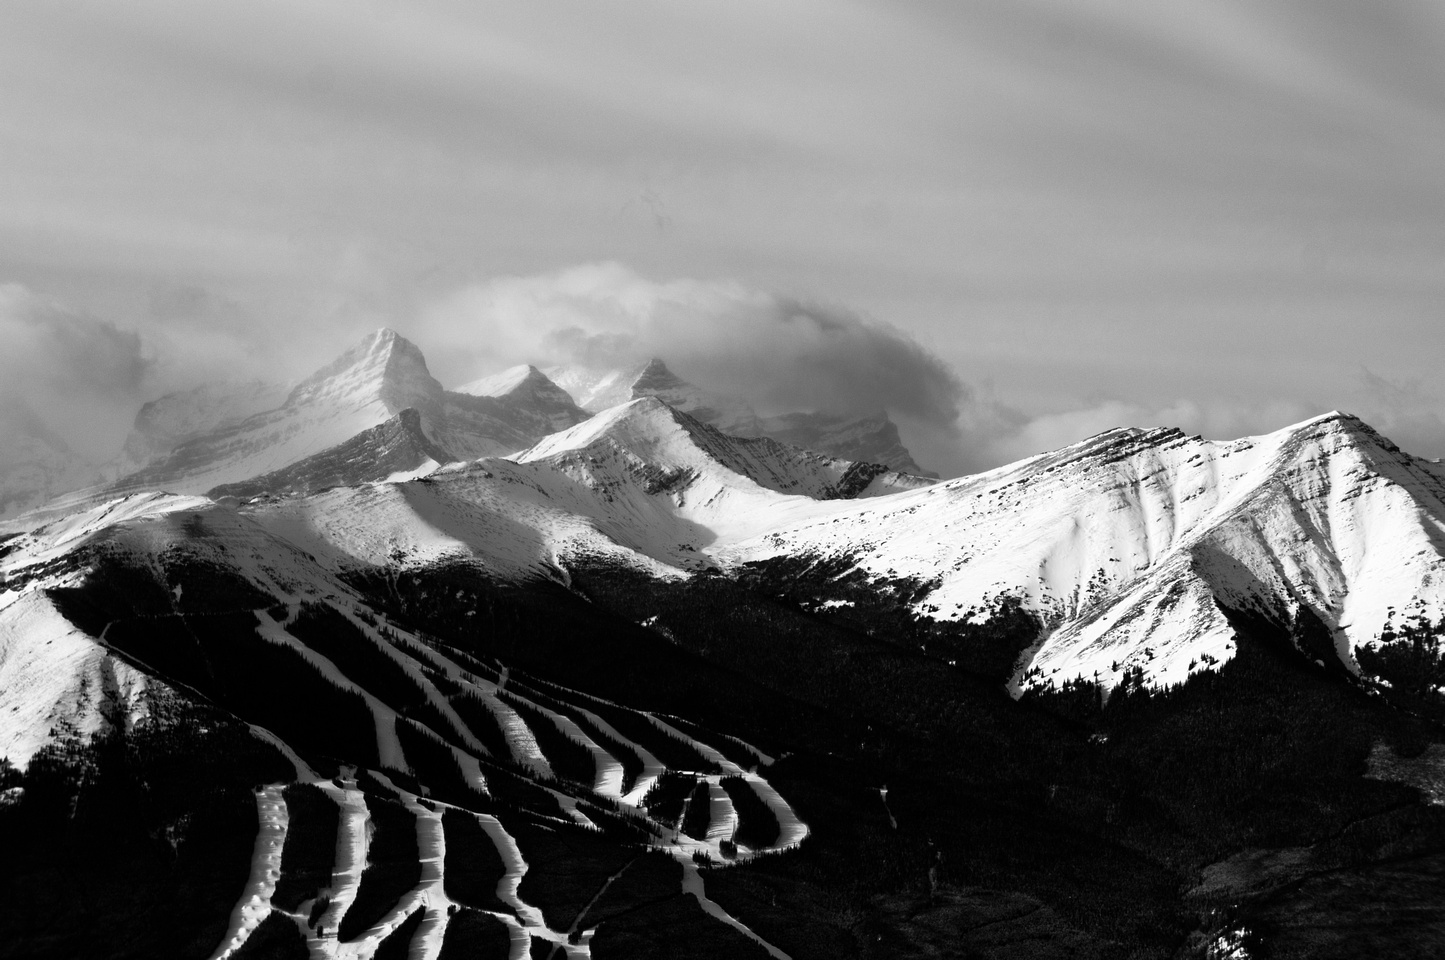 Looking over Nakiska and Mount Allan to Mount Lougheed's four summits.